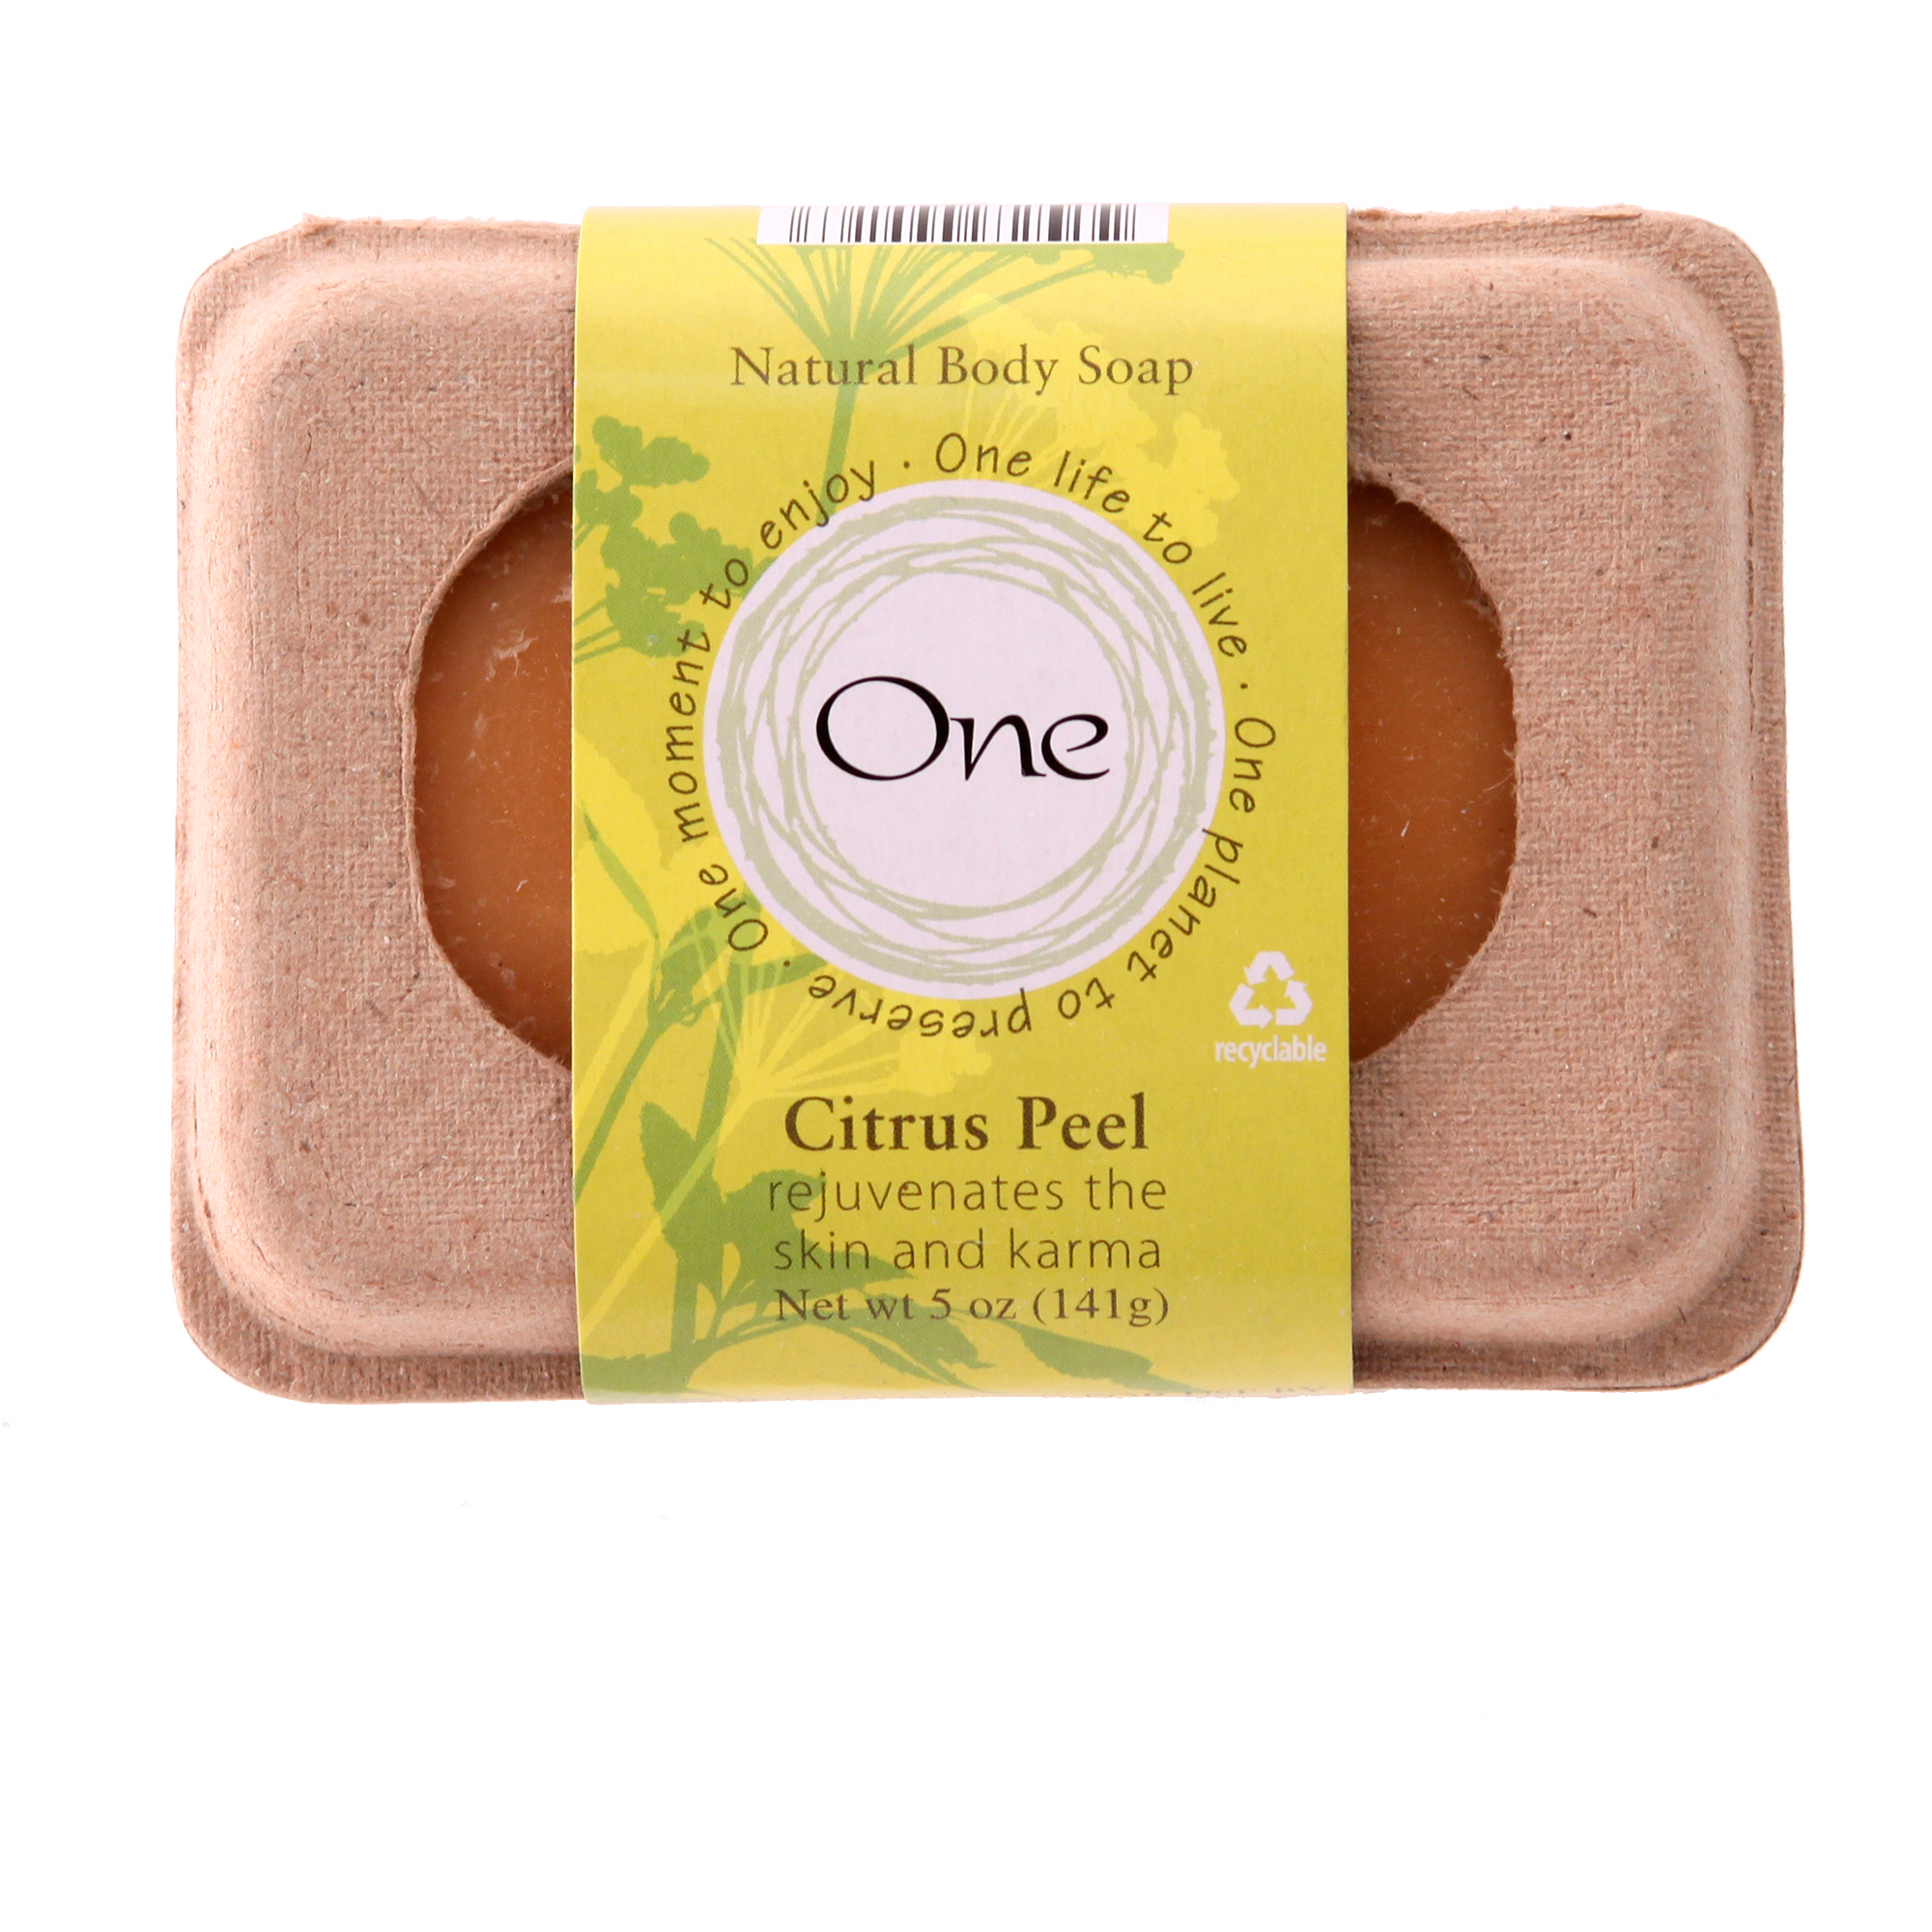 One Bar Soap, Citrus Peel, 1ct